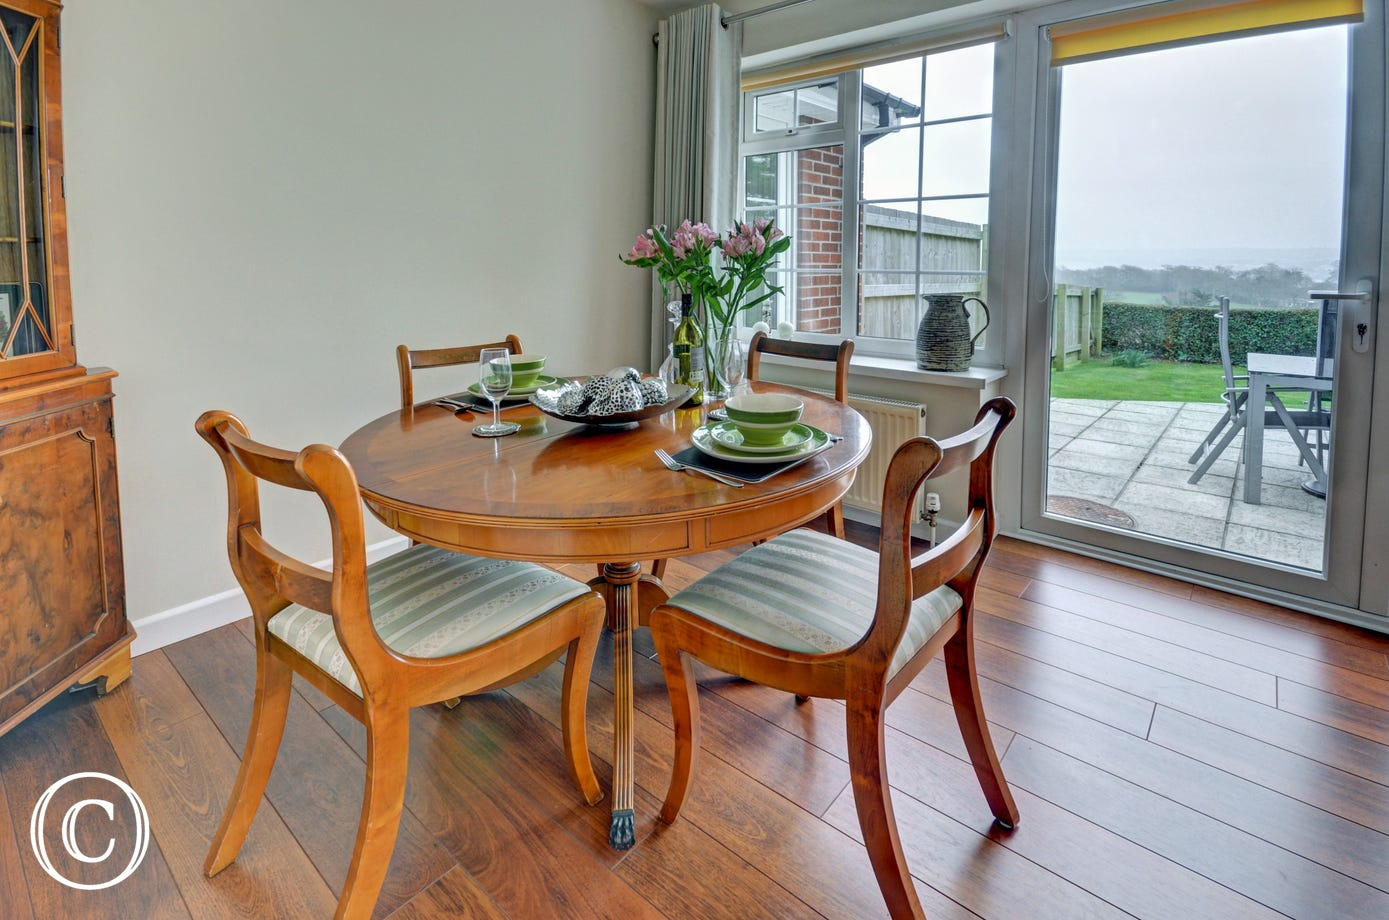 Dining area which leads out onto the patio and garden